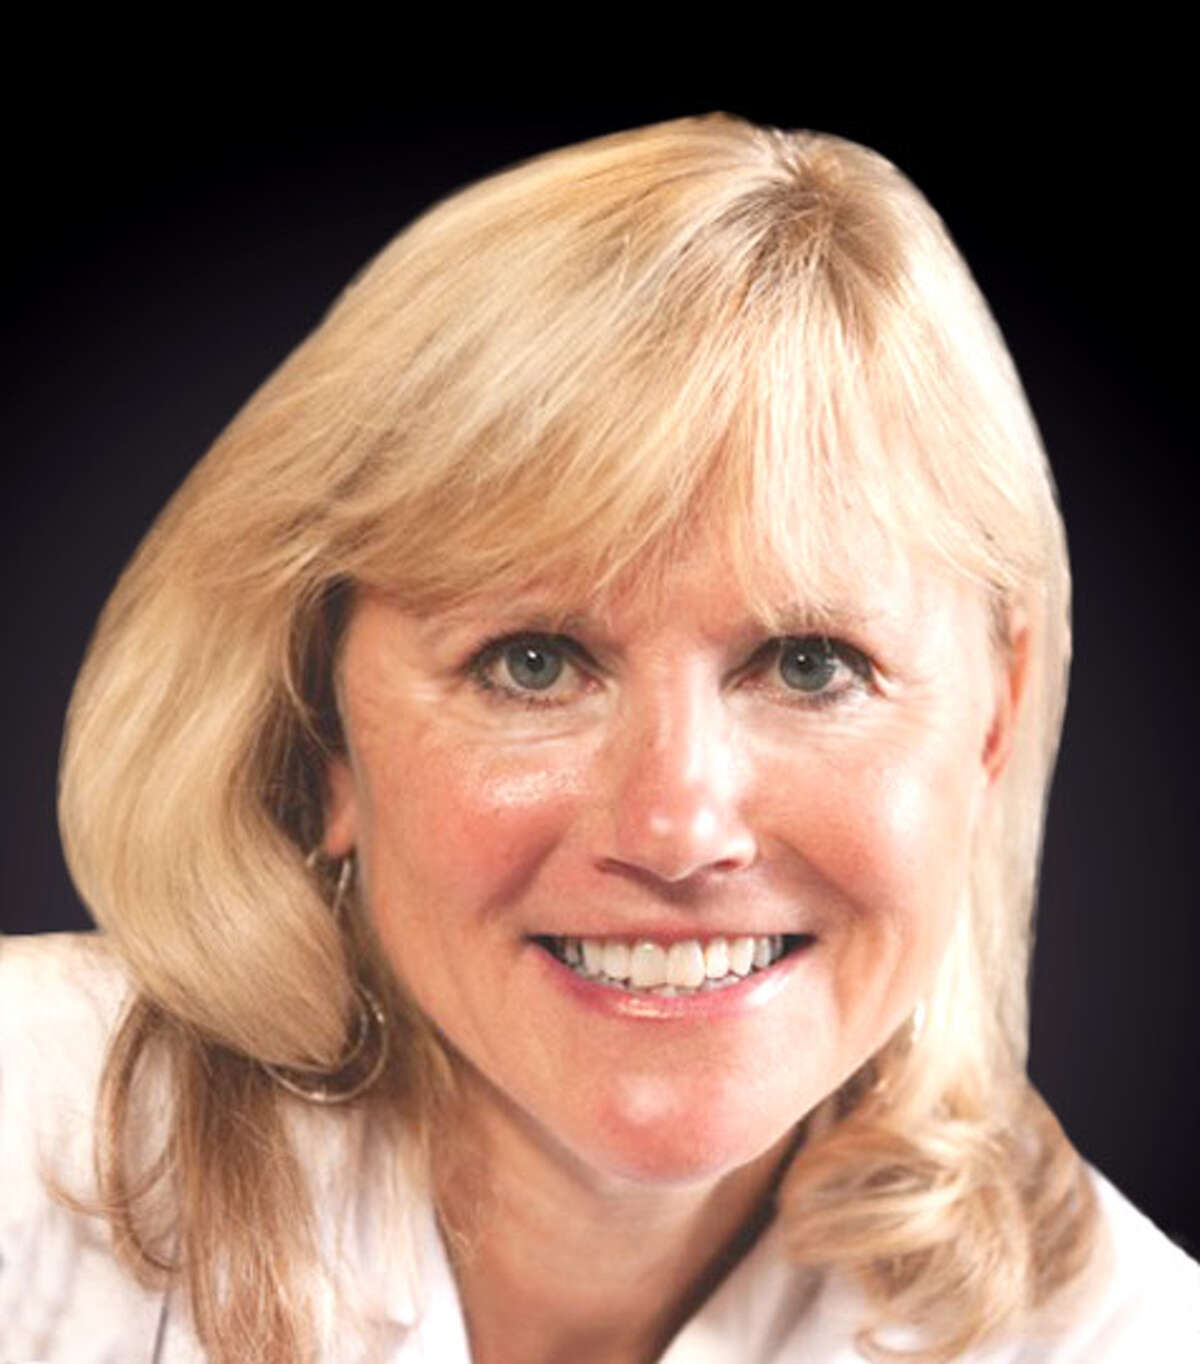 Dr. Ann McKee, co-director of the Center for the Study of Traumatic Encephalopathy at Boston University